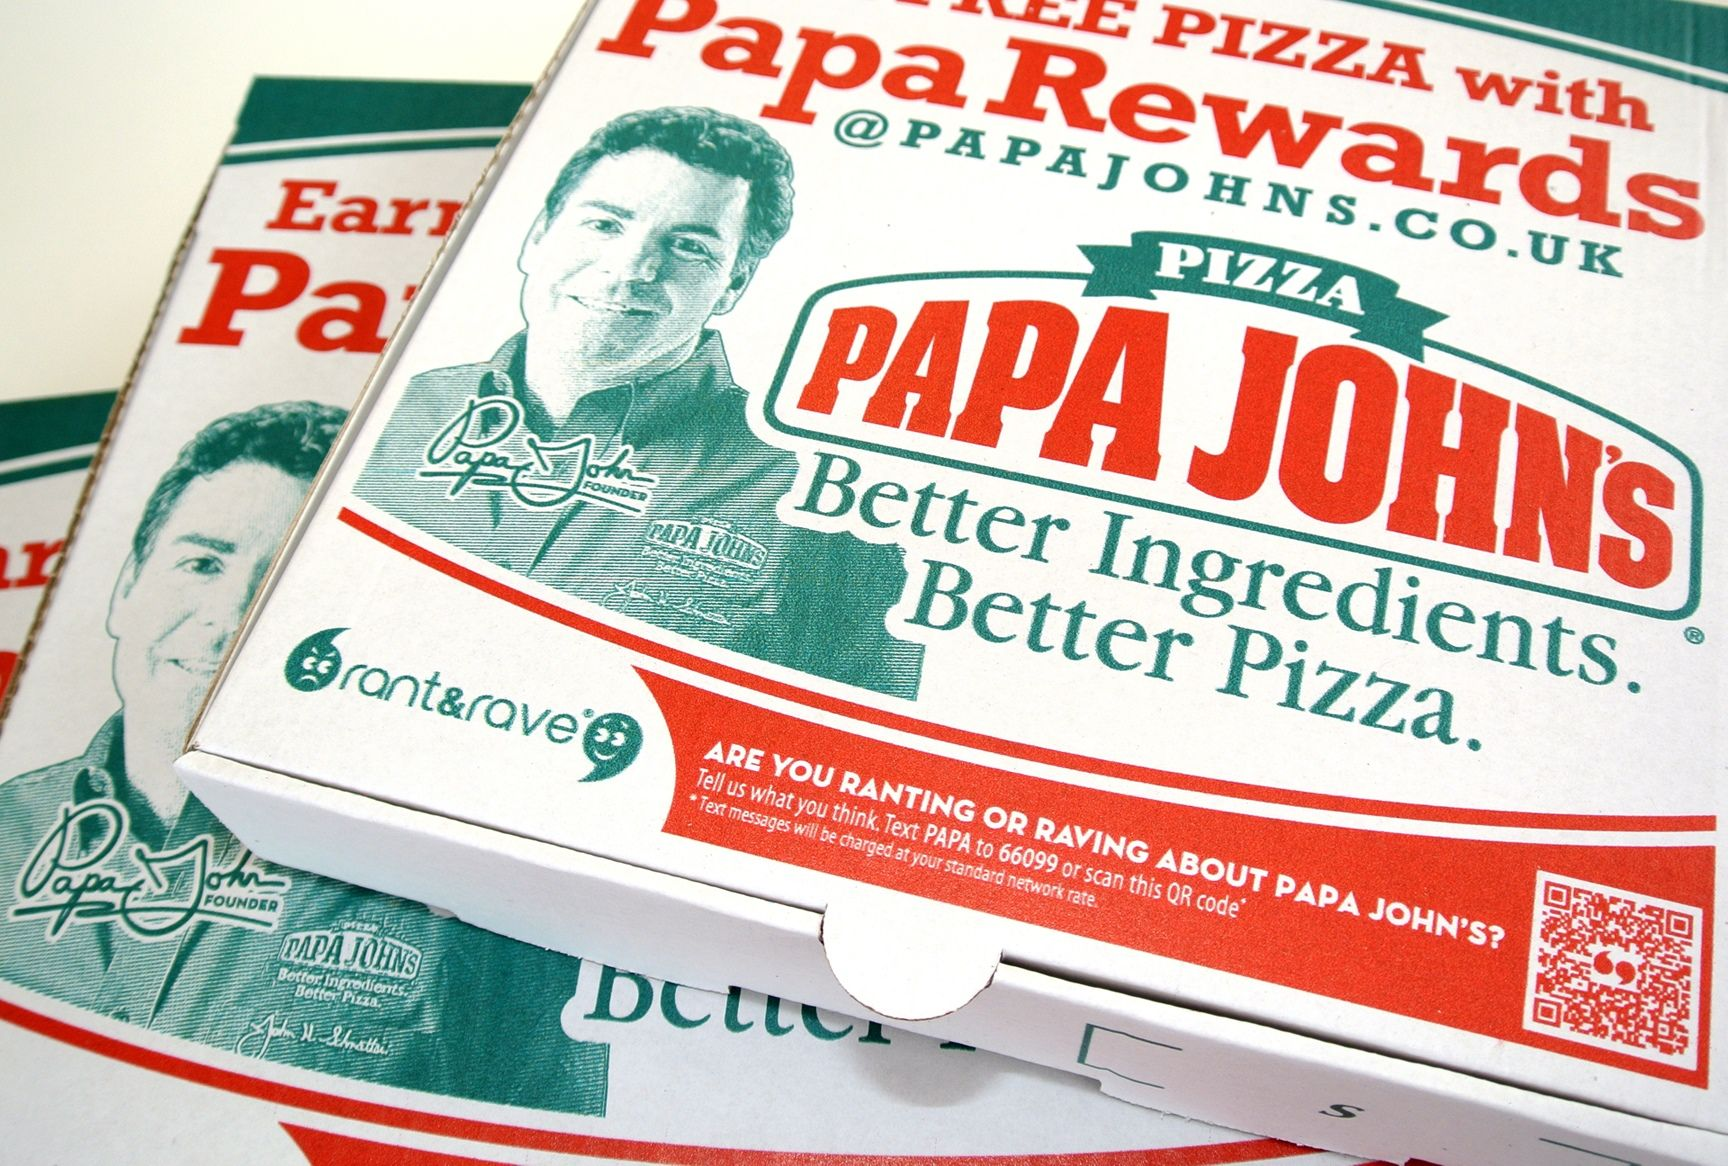 Франшиза Papa John's пришла в Казань | Business Blog ... Papa Johns Pizza Box Opened